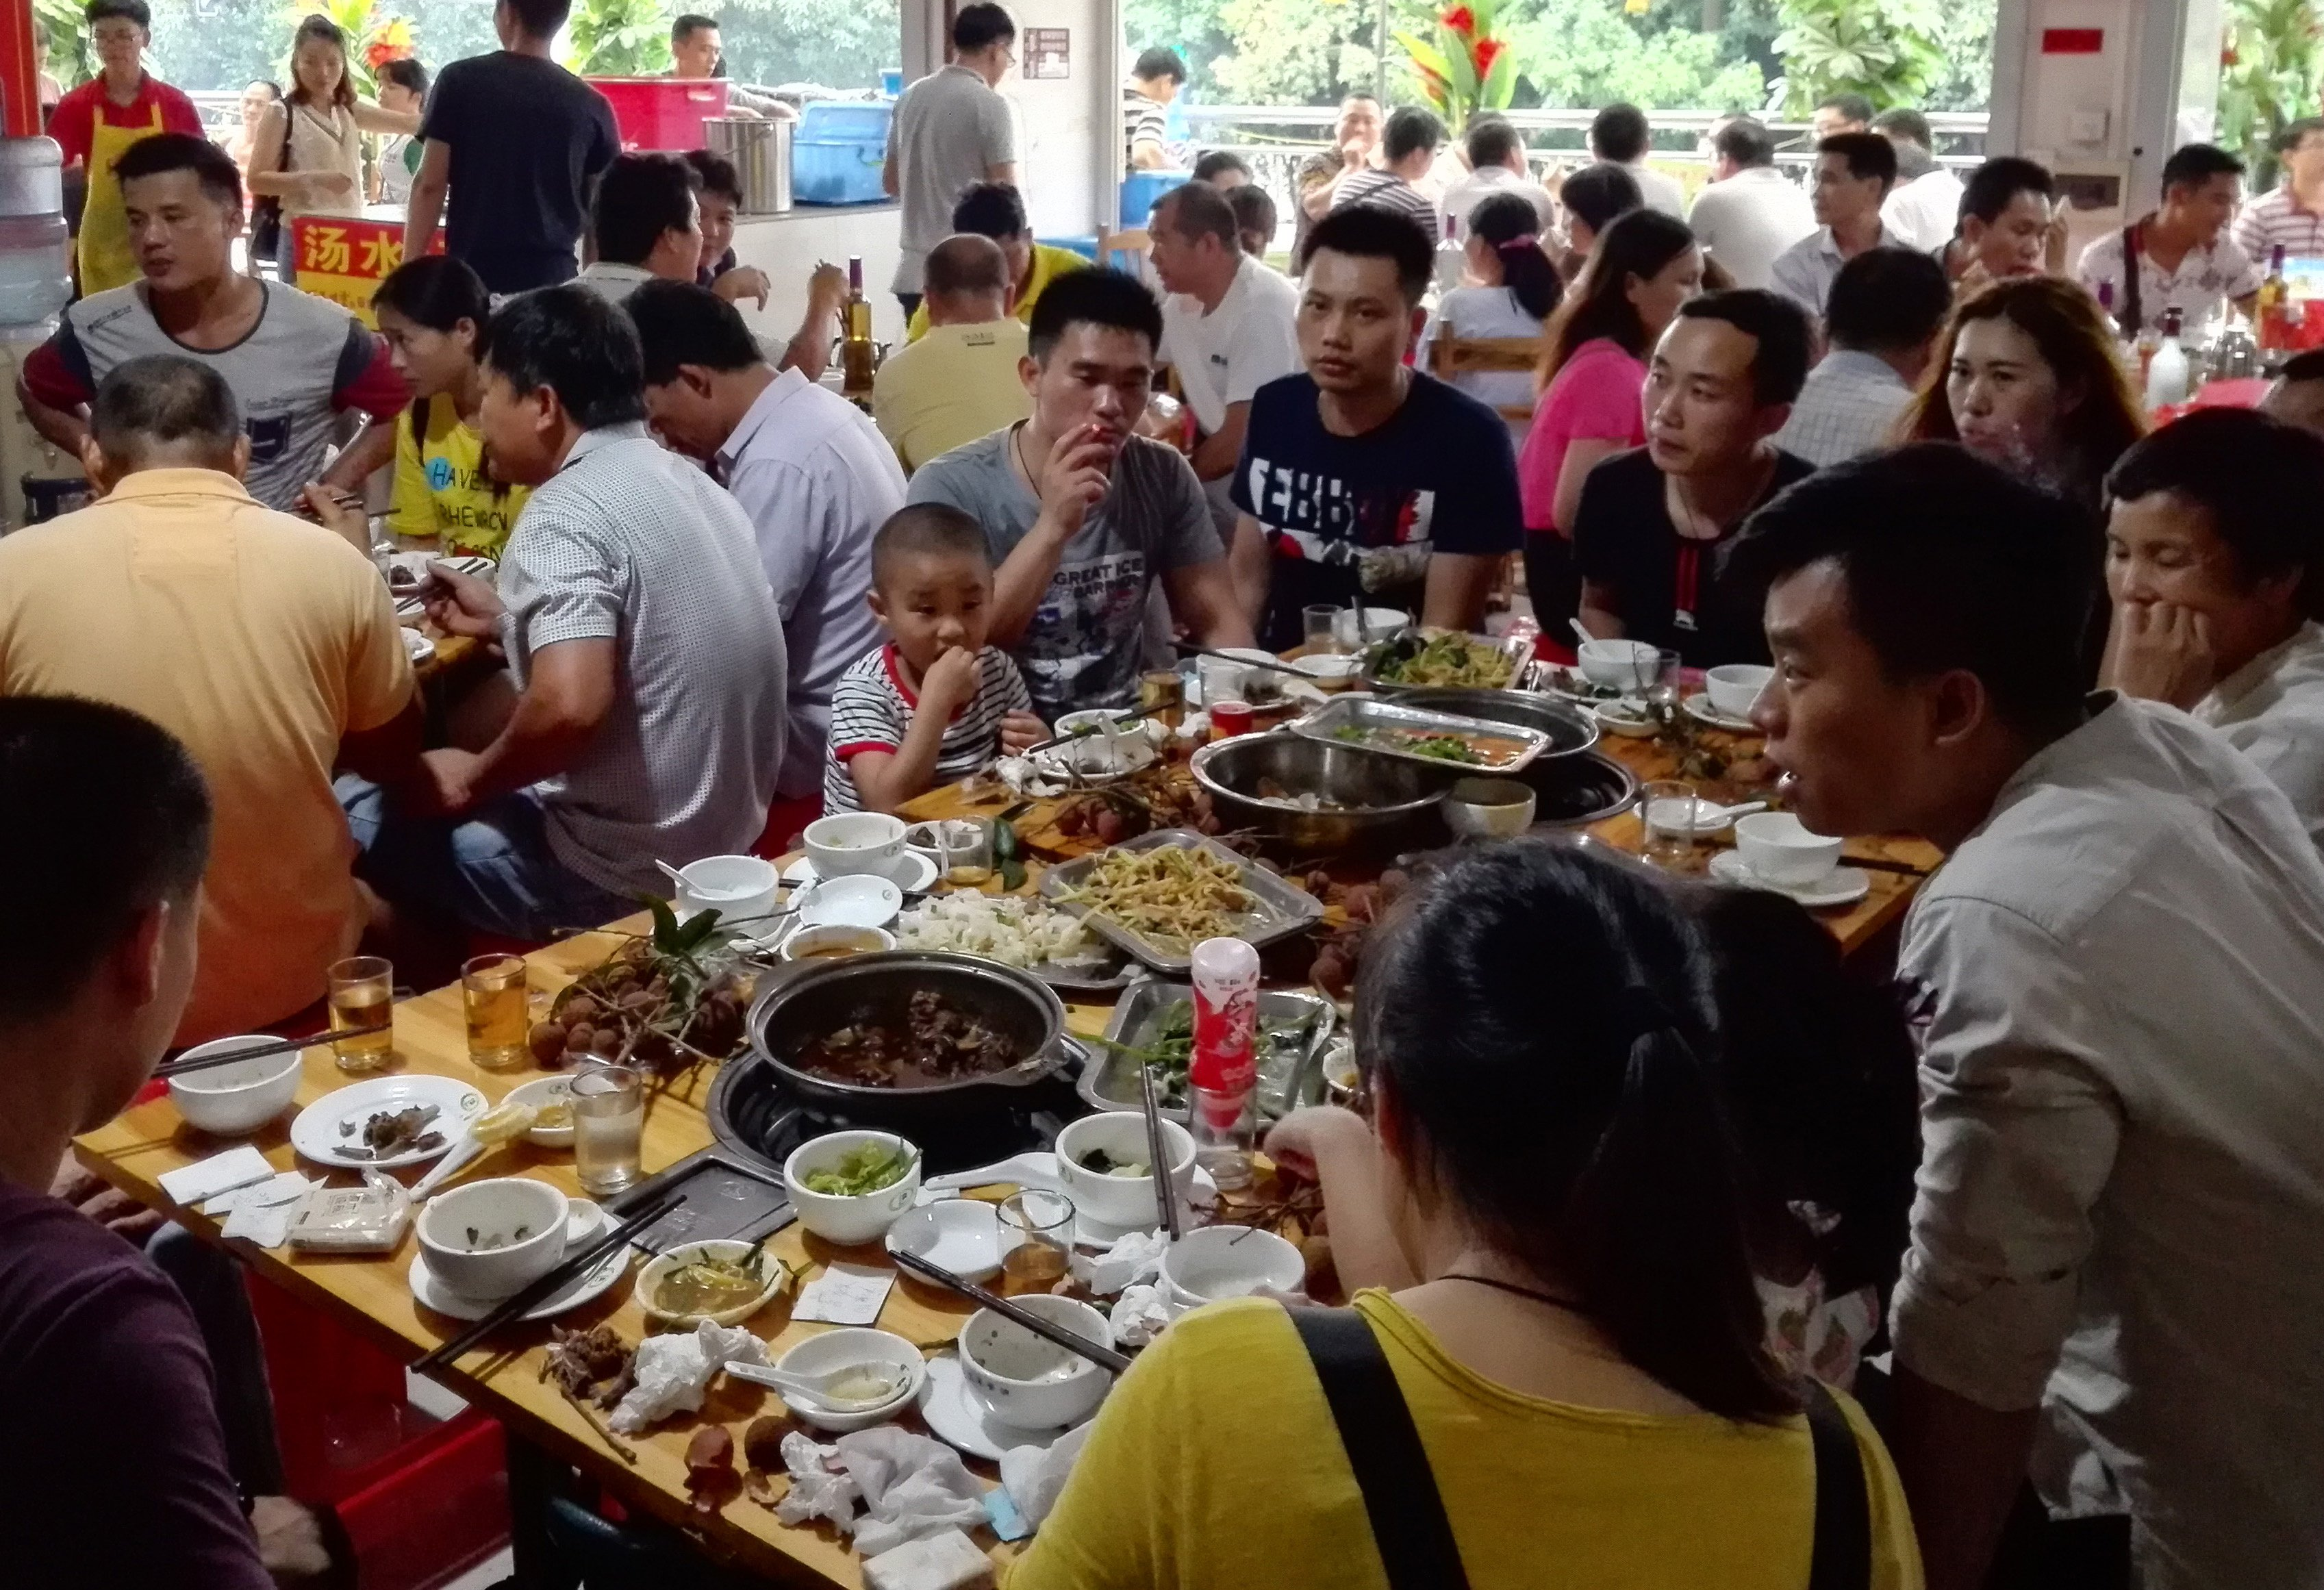 People eat dog meat at a restaurant in Yulin, in China's southern Guangxi region on June 21, 2017. China's most notorious dog meat festival opened in Yulin on June 21, 2017, with butchers hacking slabs of canines and cooks frying the flesh following rumours that authorities would impose a ban this year. (Photo credit should read STR/AFP via Getty Images)